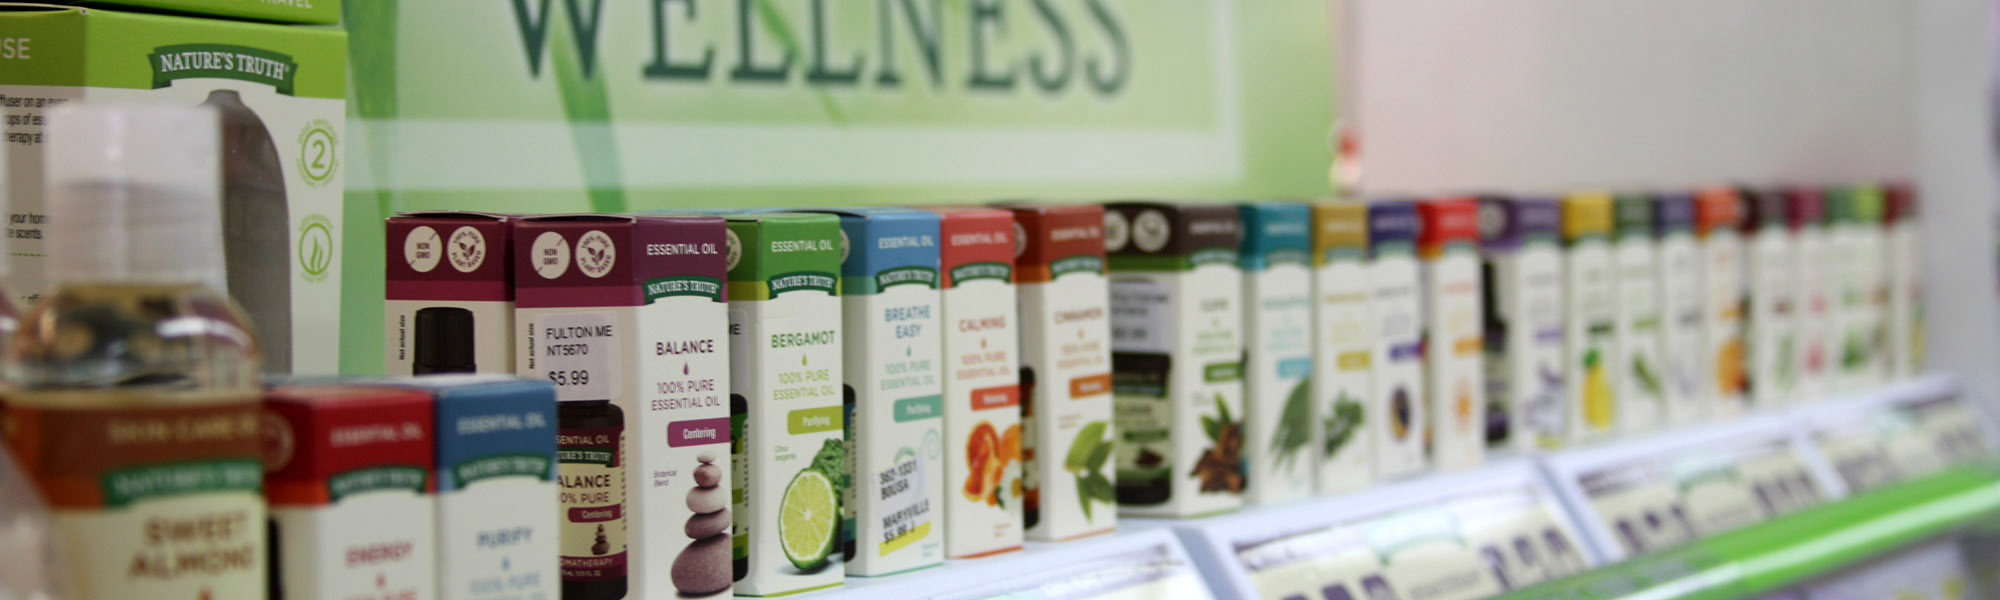 Maryville IL Pharmacy Wellness Products